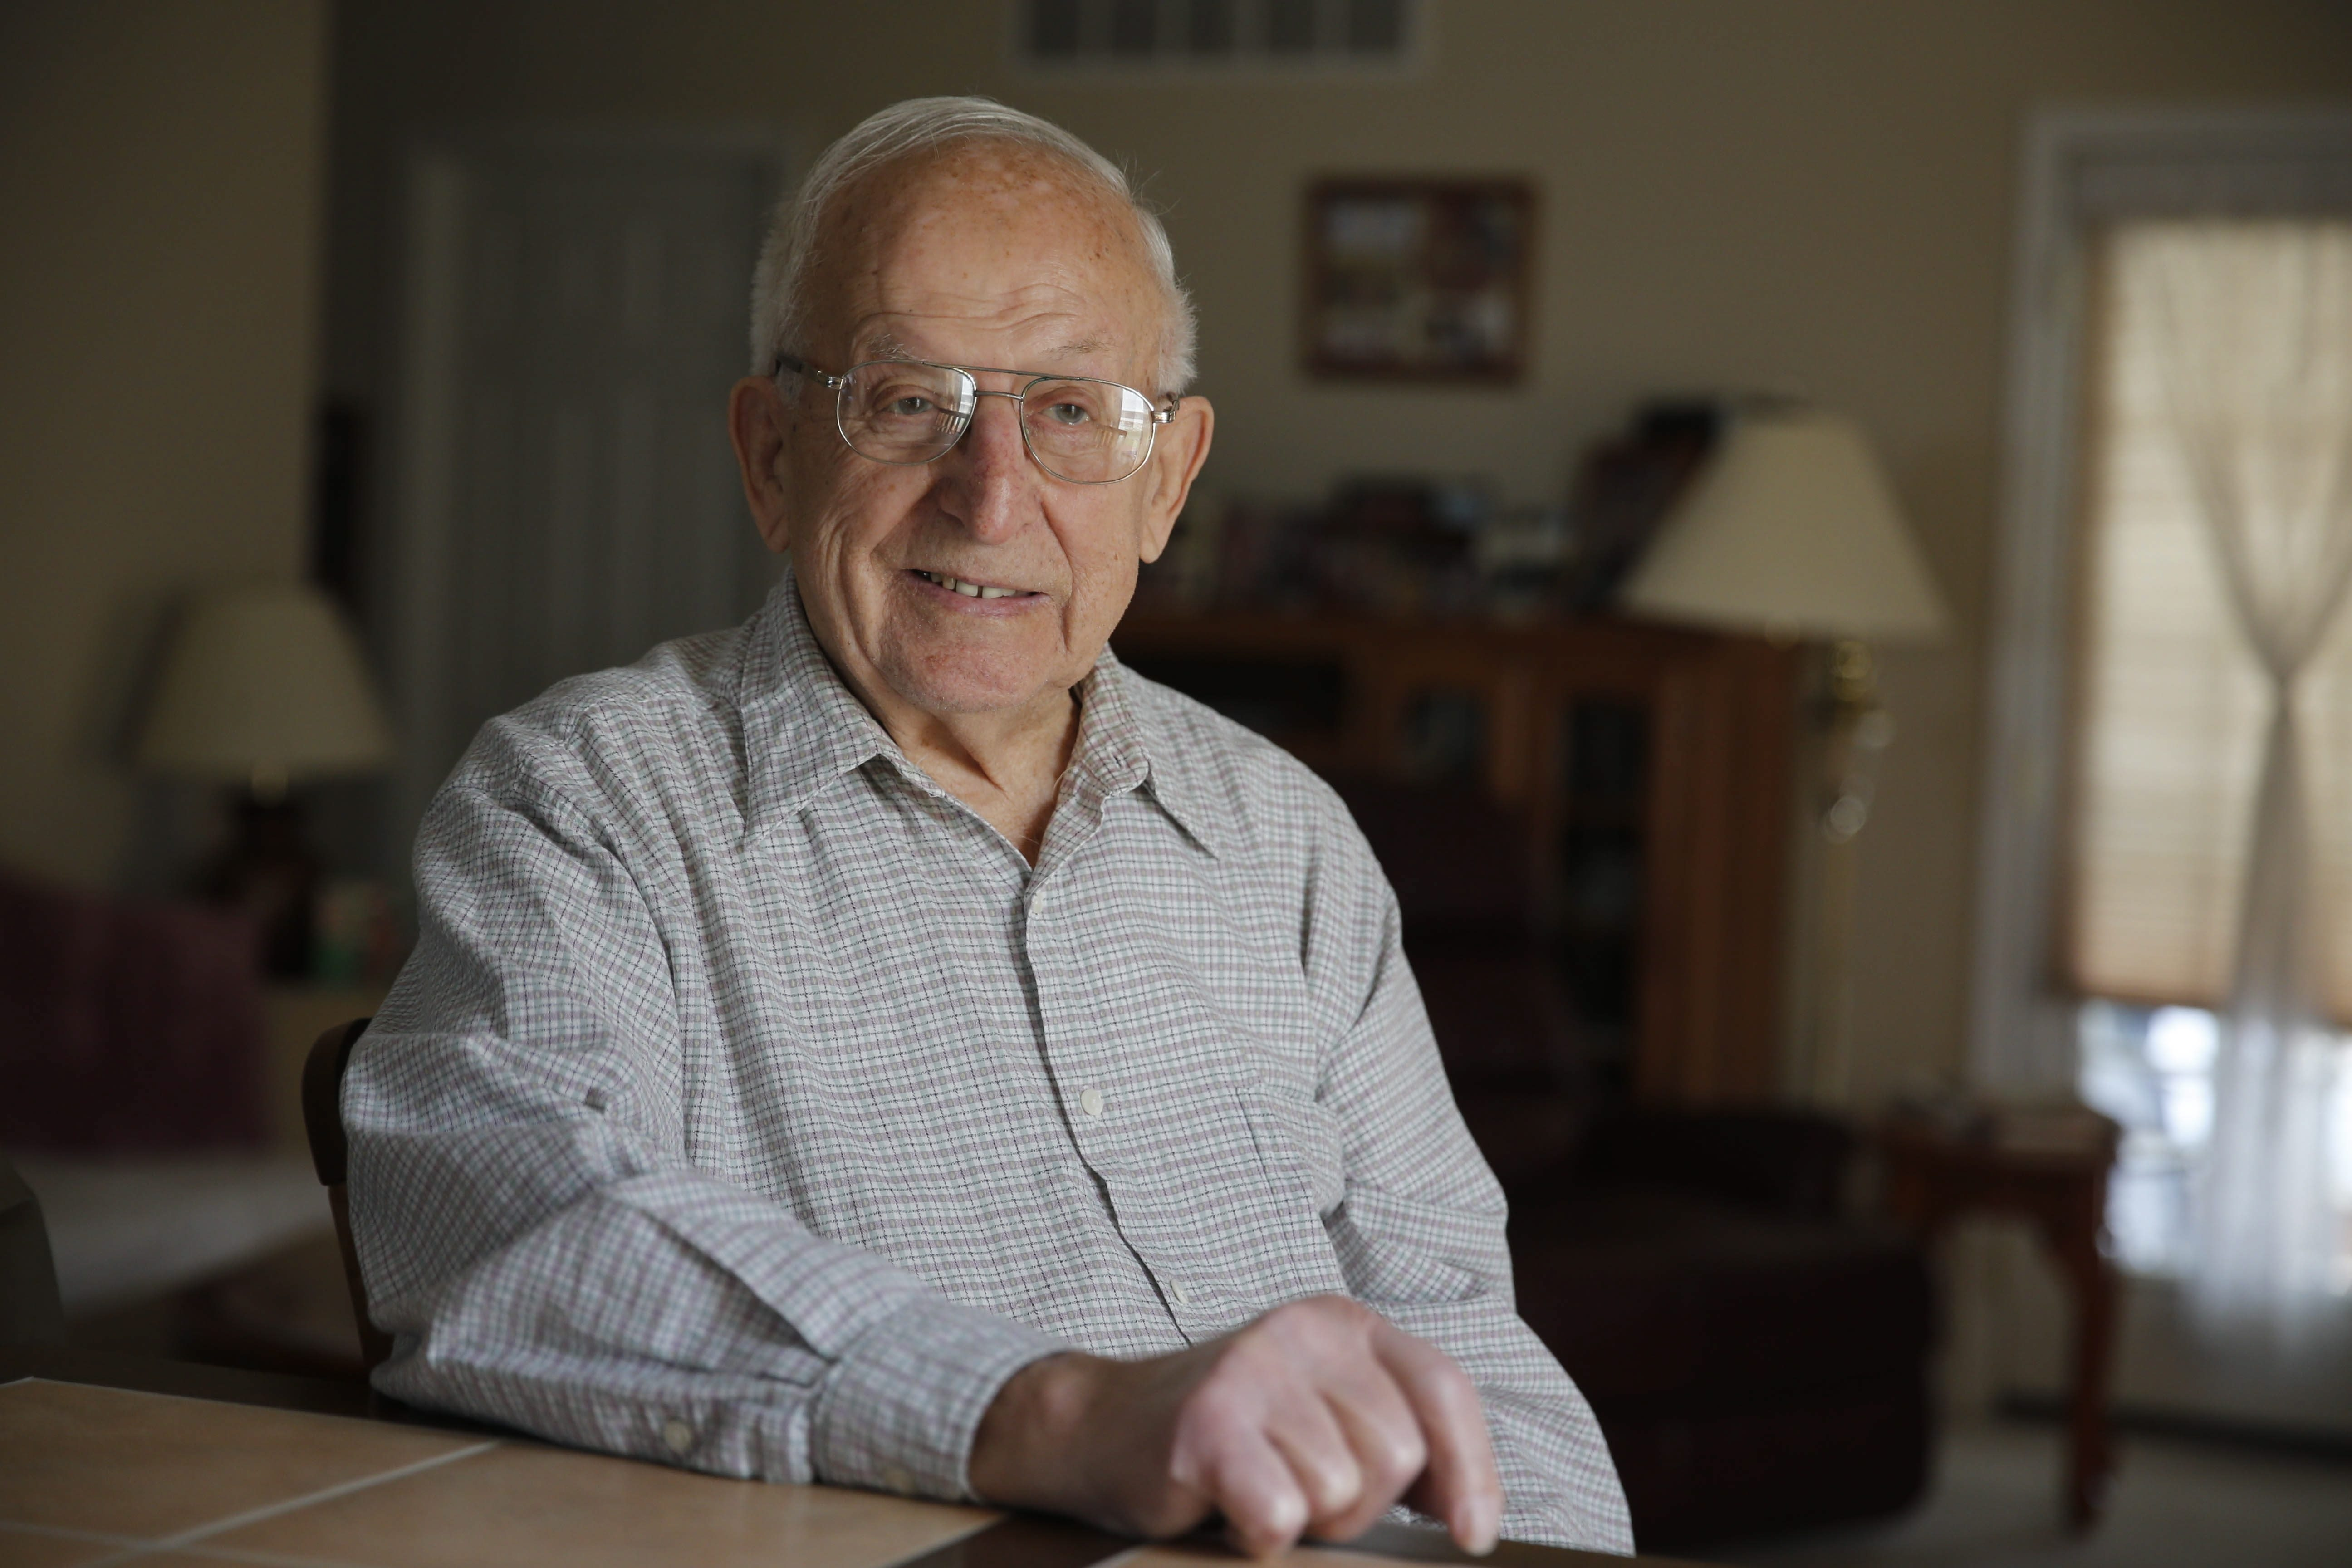 """After WWII came war in Korea for Robert C. Senko. """"I had to engage in hand-to-hand combat,"""" he says, while """"trying to survive."""""""